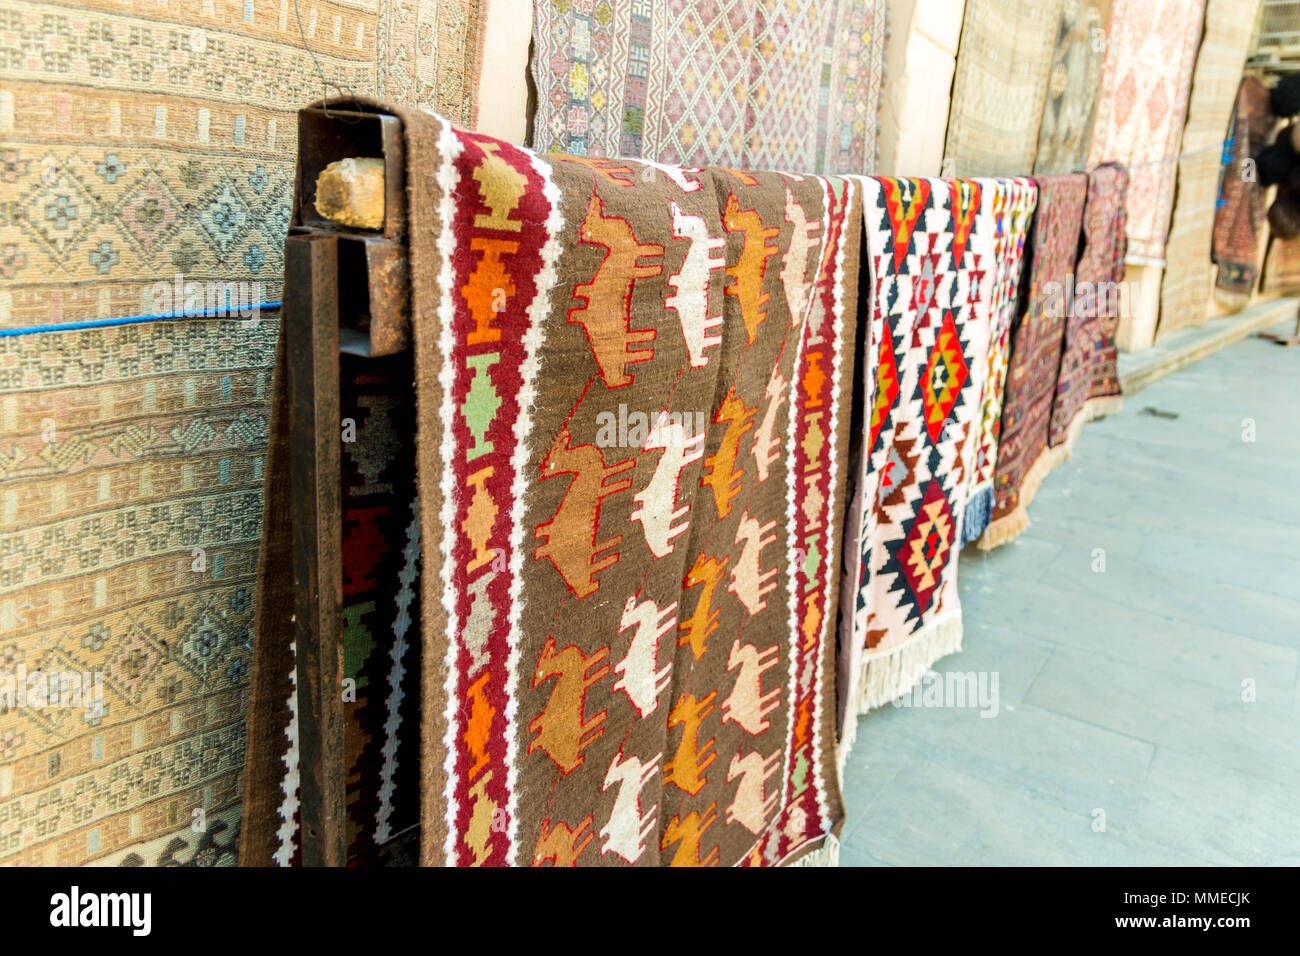 Group of precious ancient colored wool Azeri ancient carpets made by hand in ancient city at Carpet store. - Stock Image